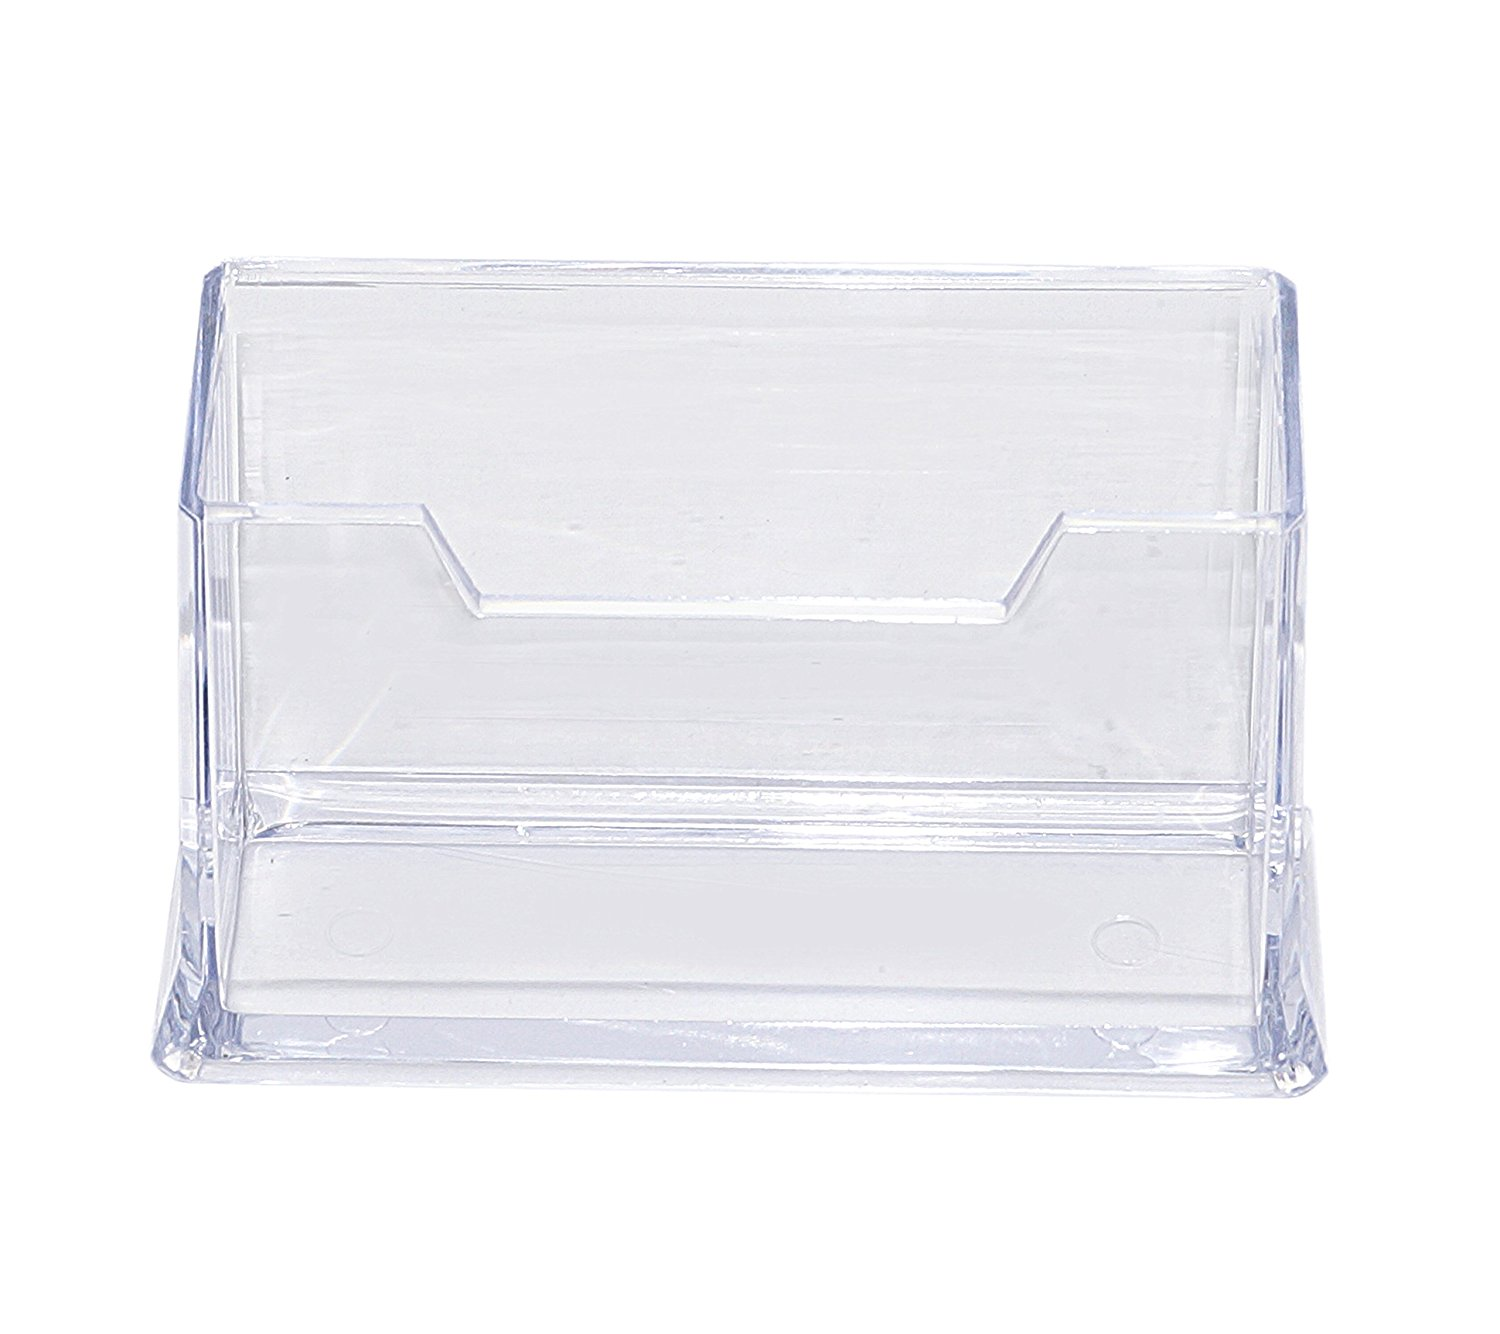 Premium Acrylic Clear Business Card Holder Display, Plastic ...